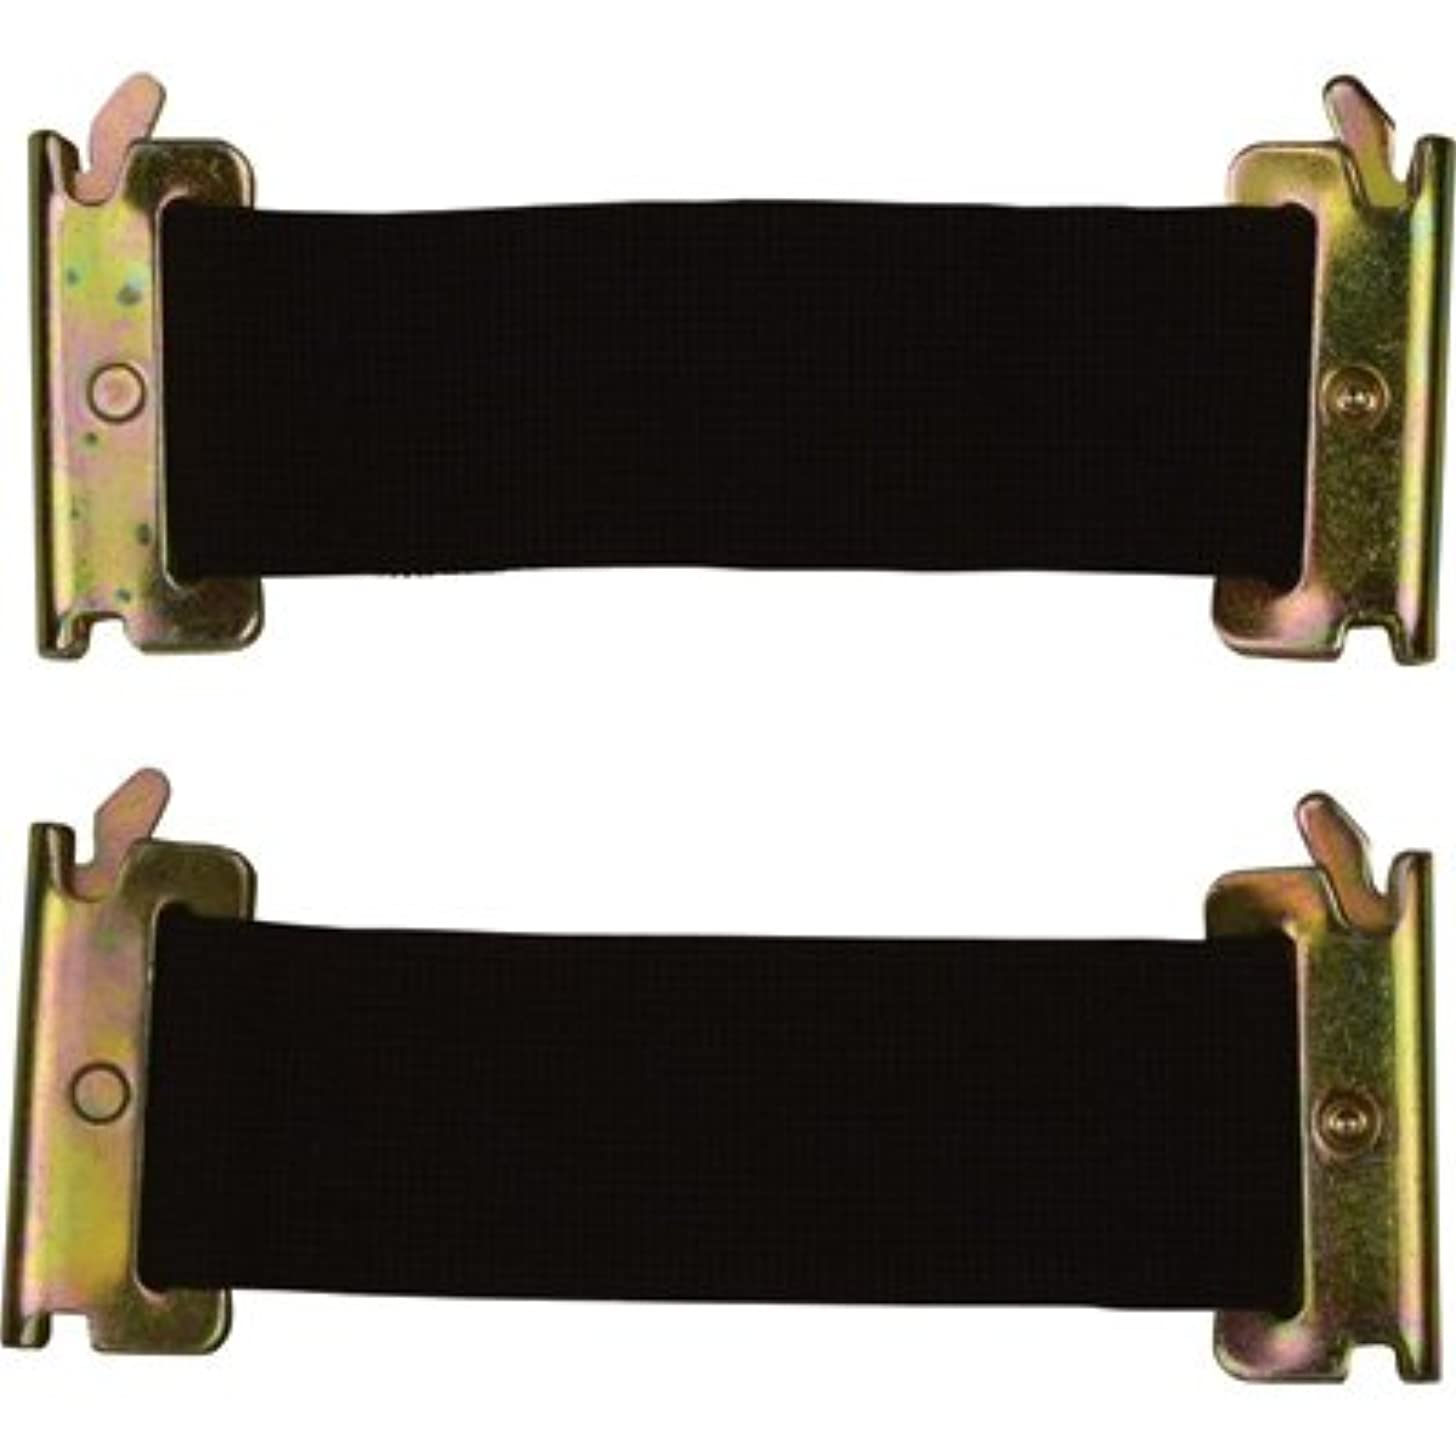 CargoSmart Standard Bungee Straps - 2-Pack, 2in.W x 6in.L, For E-Track and X-Track